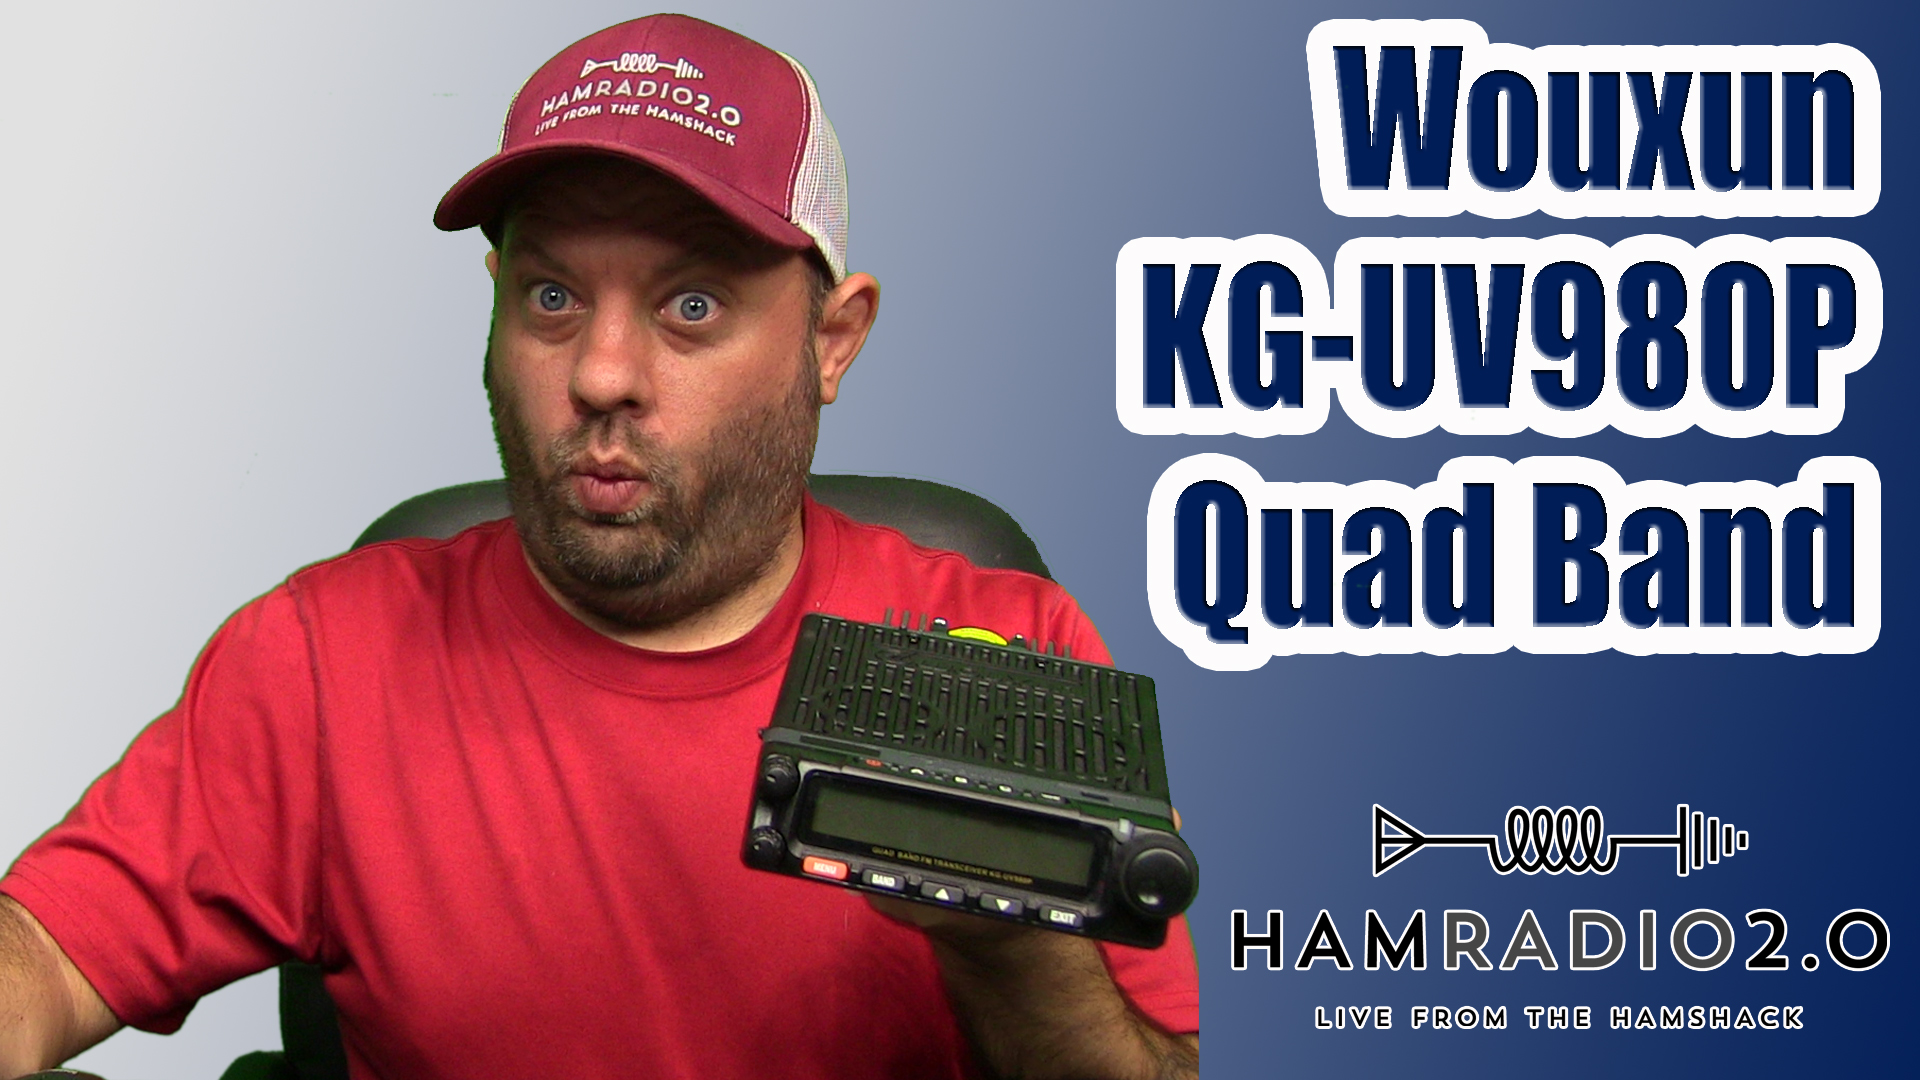 Episode 233: Wouxun KG-UV980P Quad Band First Look